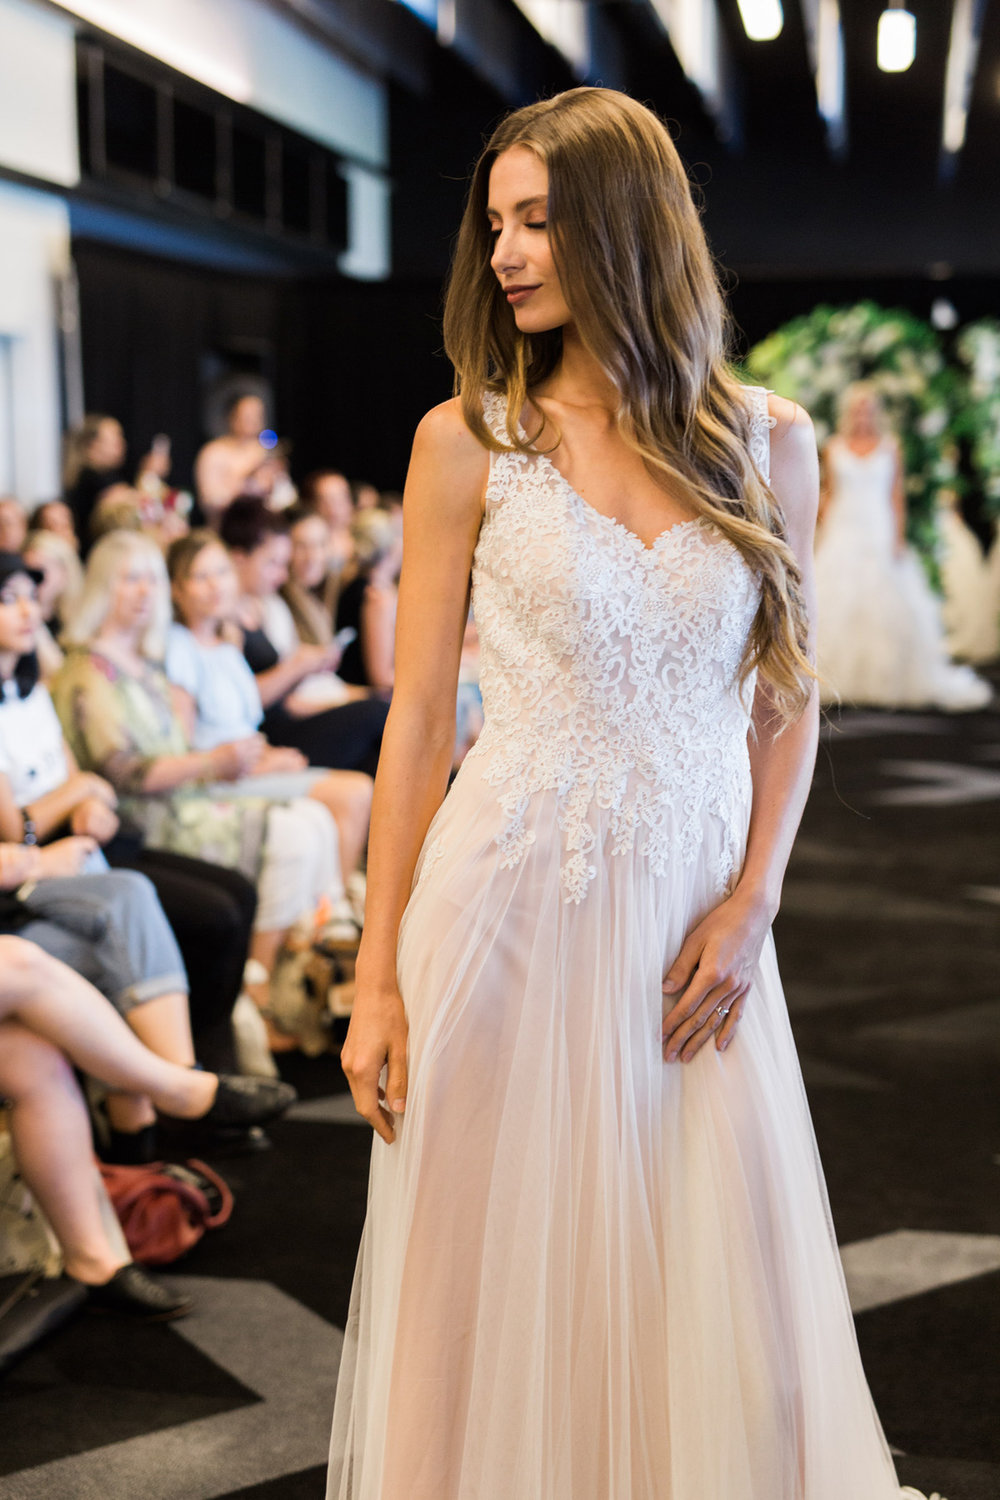 Love-Wedding-Festival-Sydney-Wedding-Gown-Jean-Fox-Bridal-2.jpg